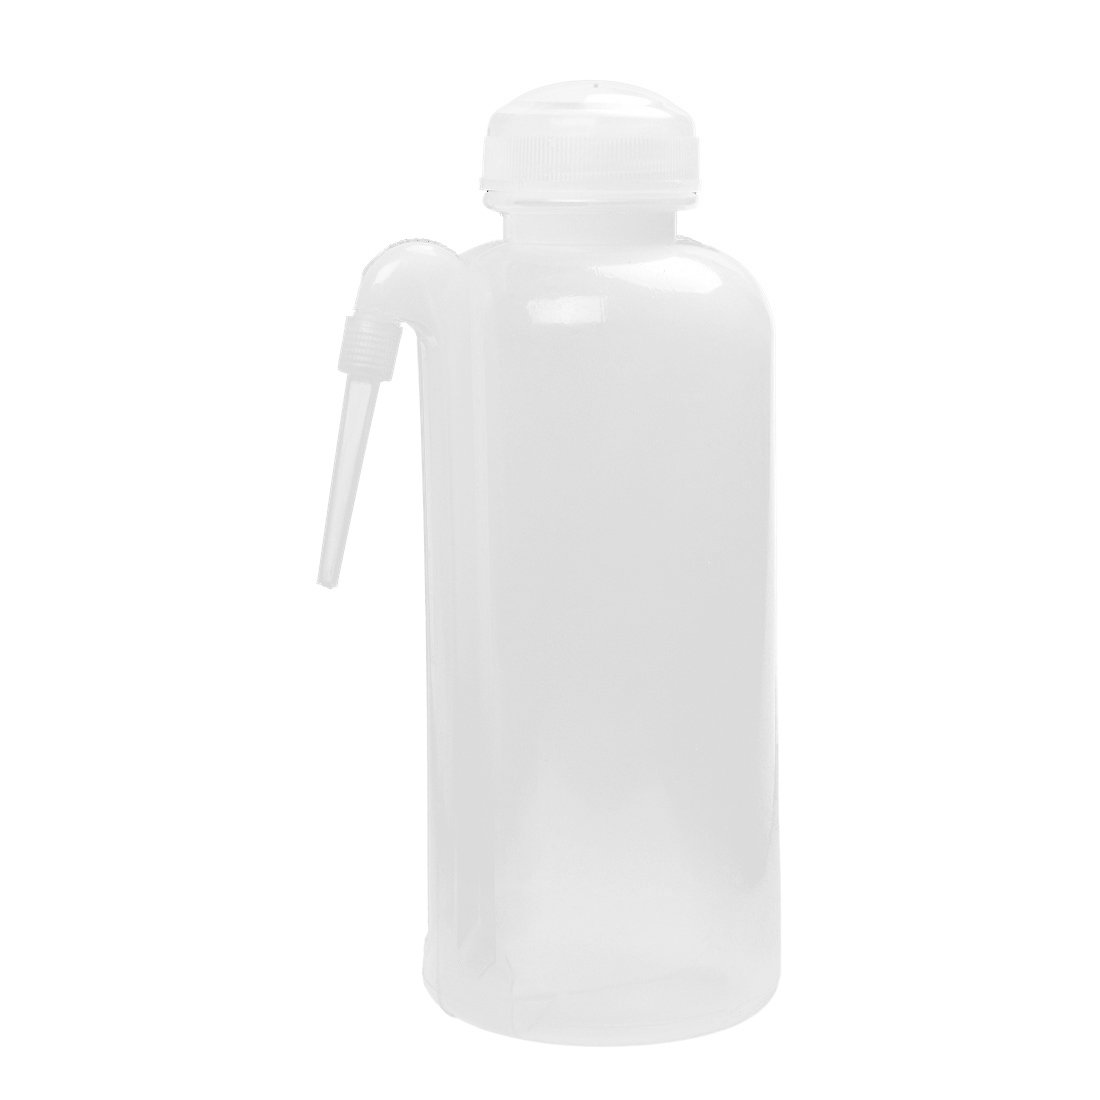 TOOGOO(R) 500ml Plastic Wash Bottle Squeeze Dispensing Bottle